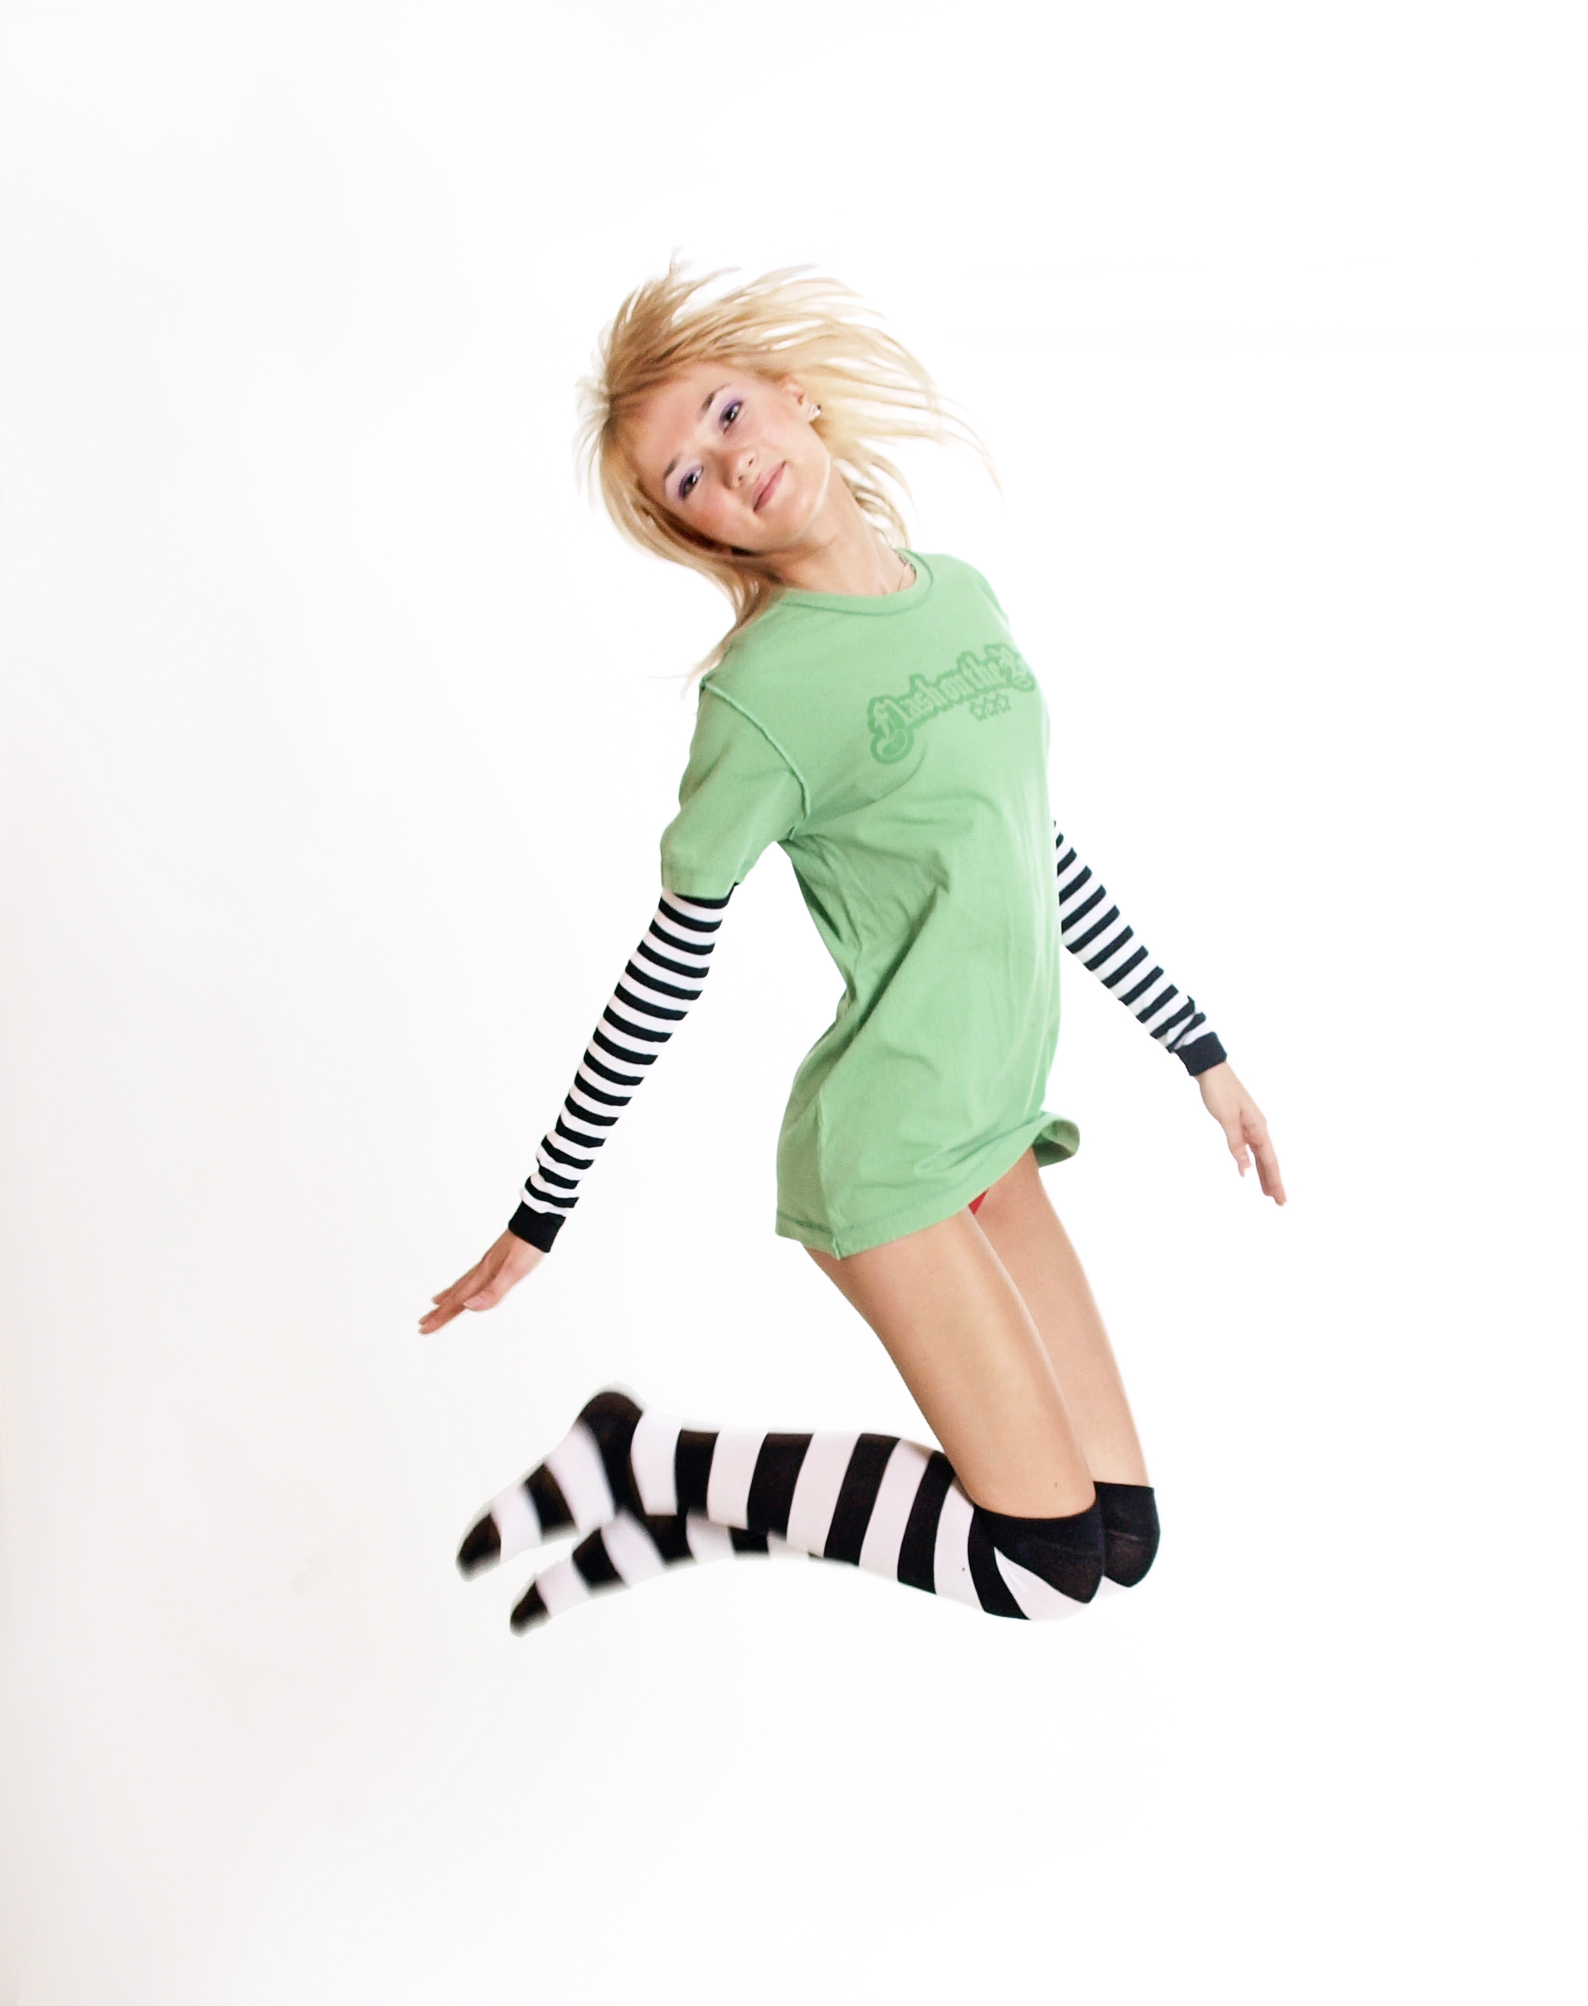 File Jumping Woman With Green Shirt And Black And White Socks And Sleeves Jpg Wikimedia Commons